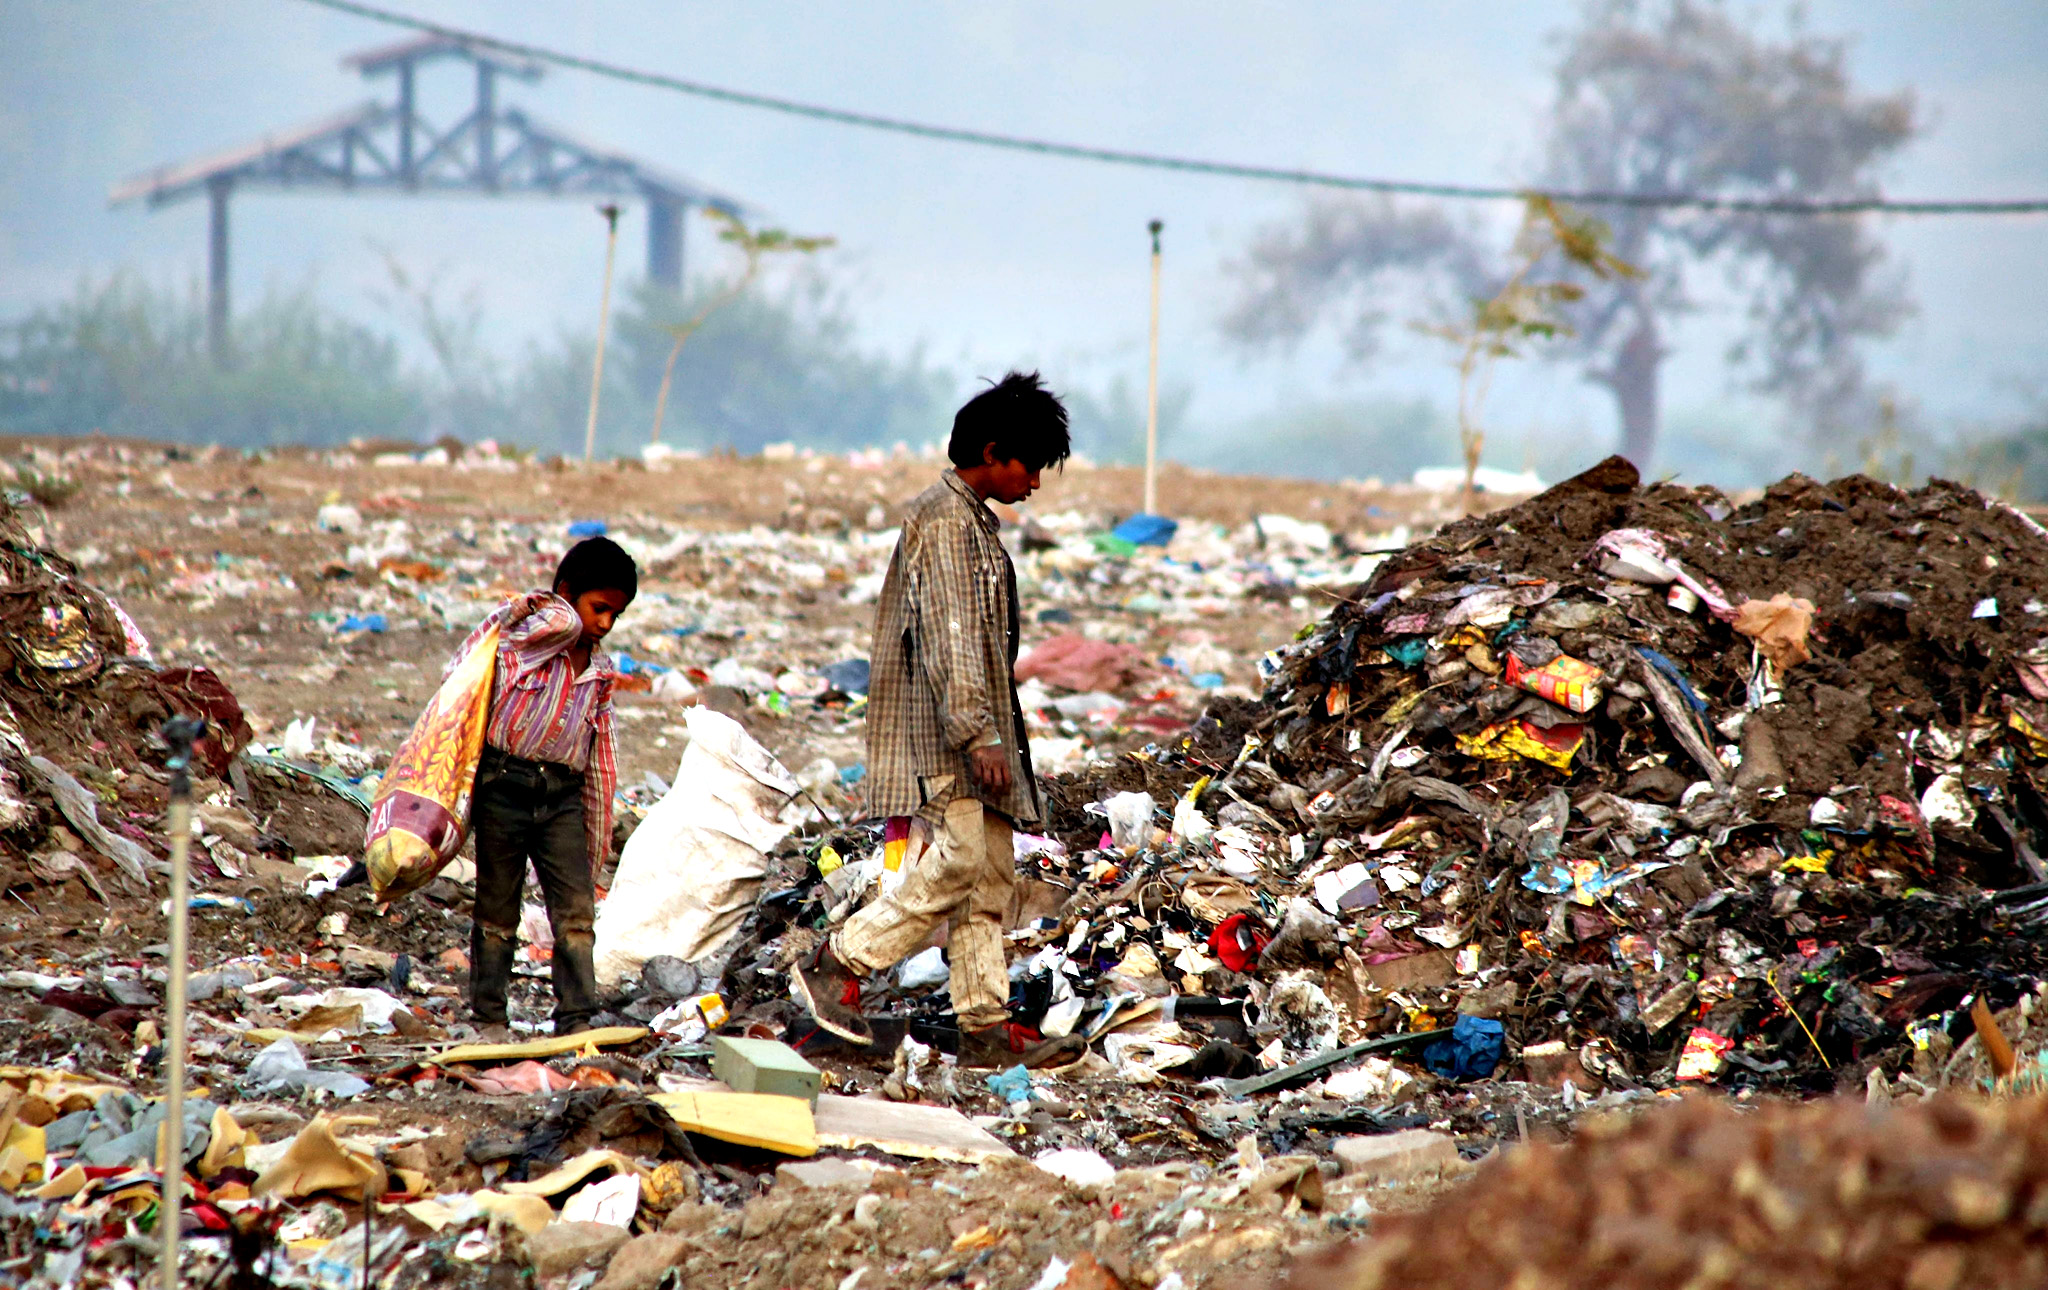 Ragpickers collect usable material from a garbage dumping ground on the eve of  World Environment Day, in Bhopal, India, 04 June 2014. World Enviornment Day is marked every year on 05 June to raise global awareness of the need to take positive environmental action.